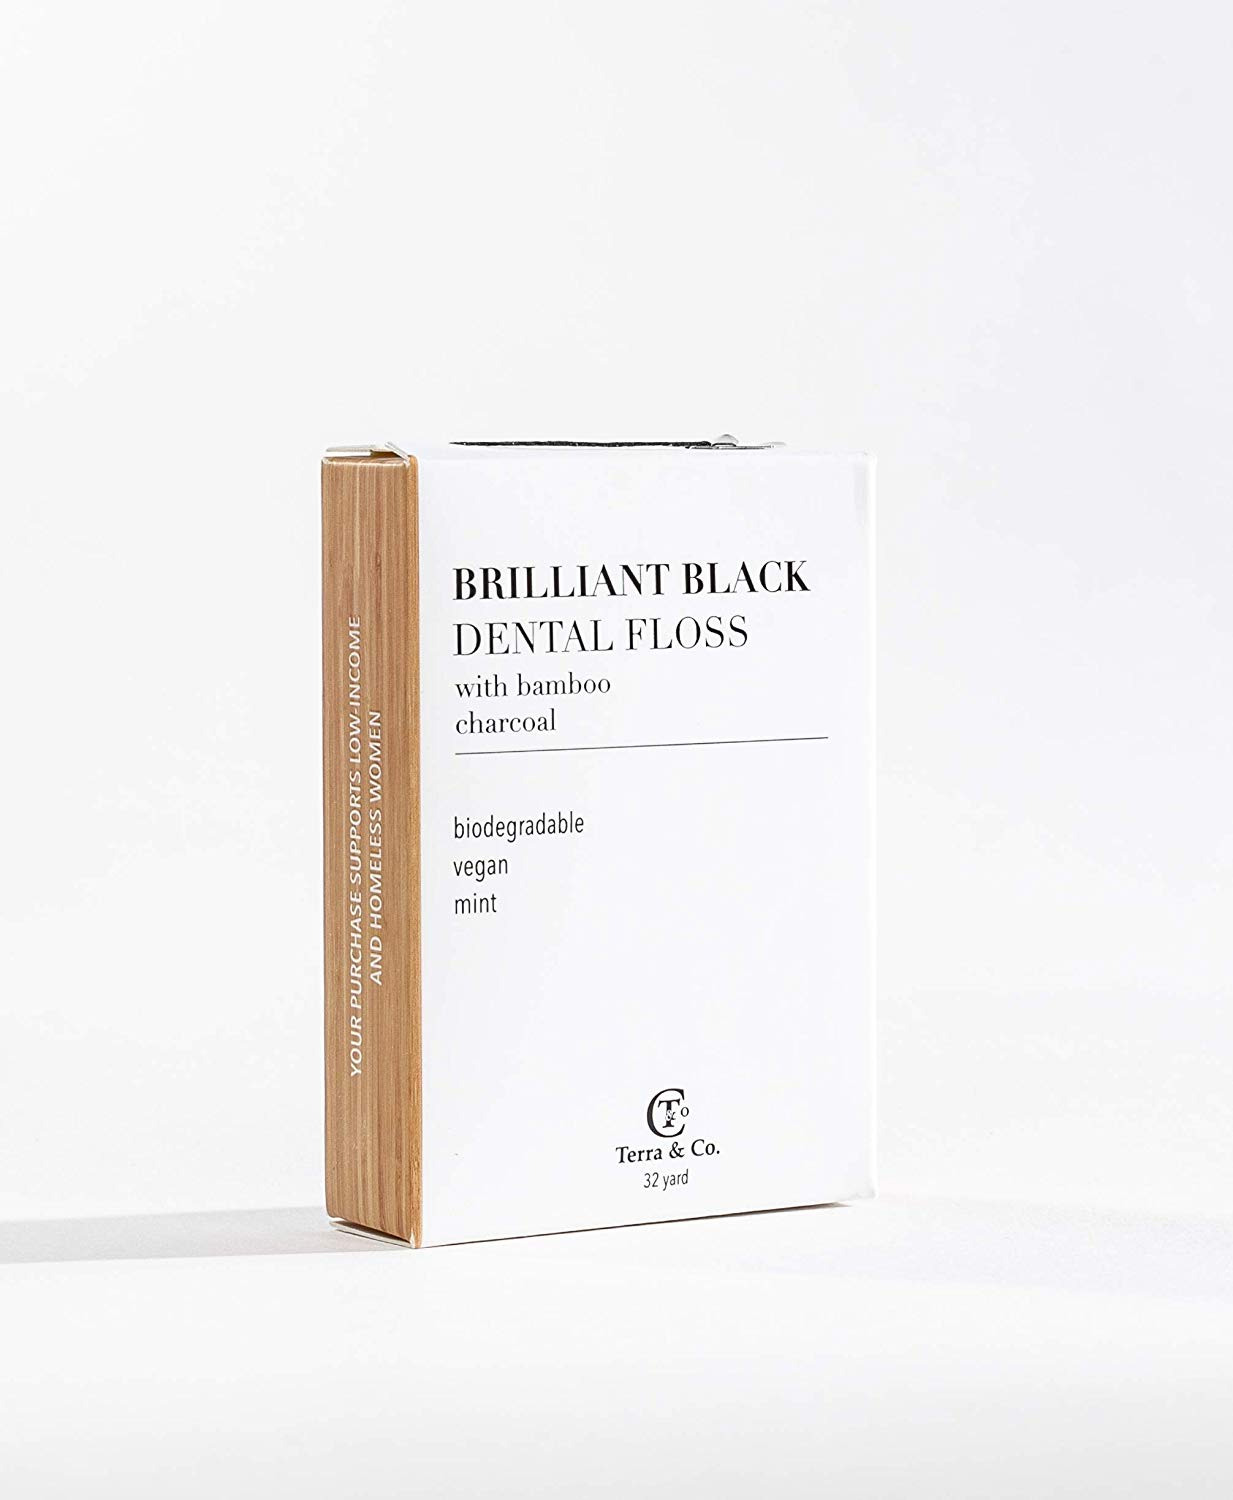 Terra & Co Brilliant Black Dental Floss With Bamboo Charcoal